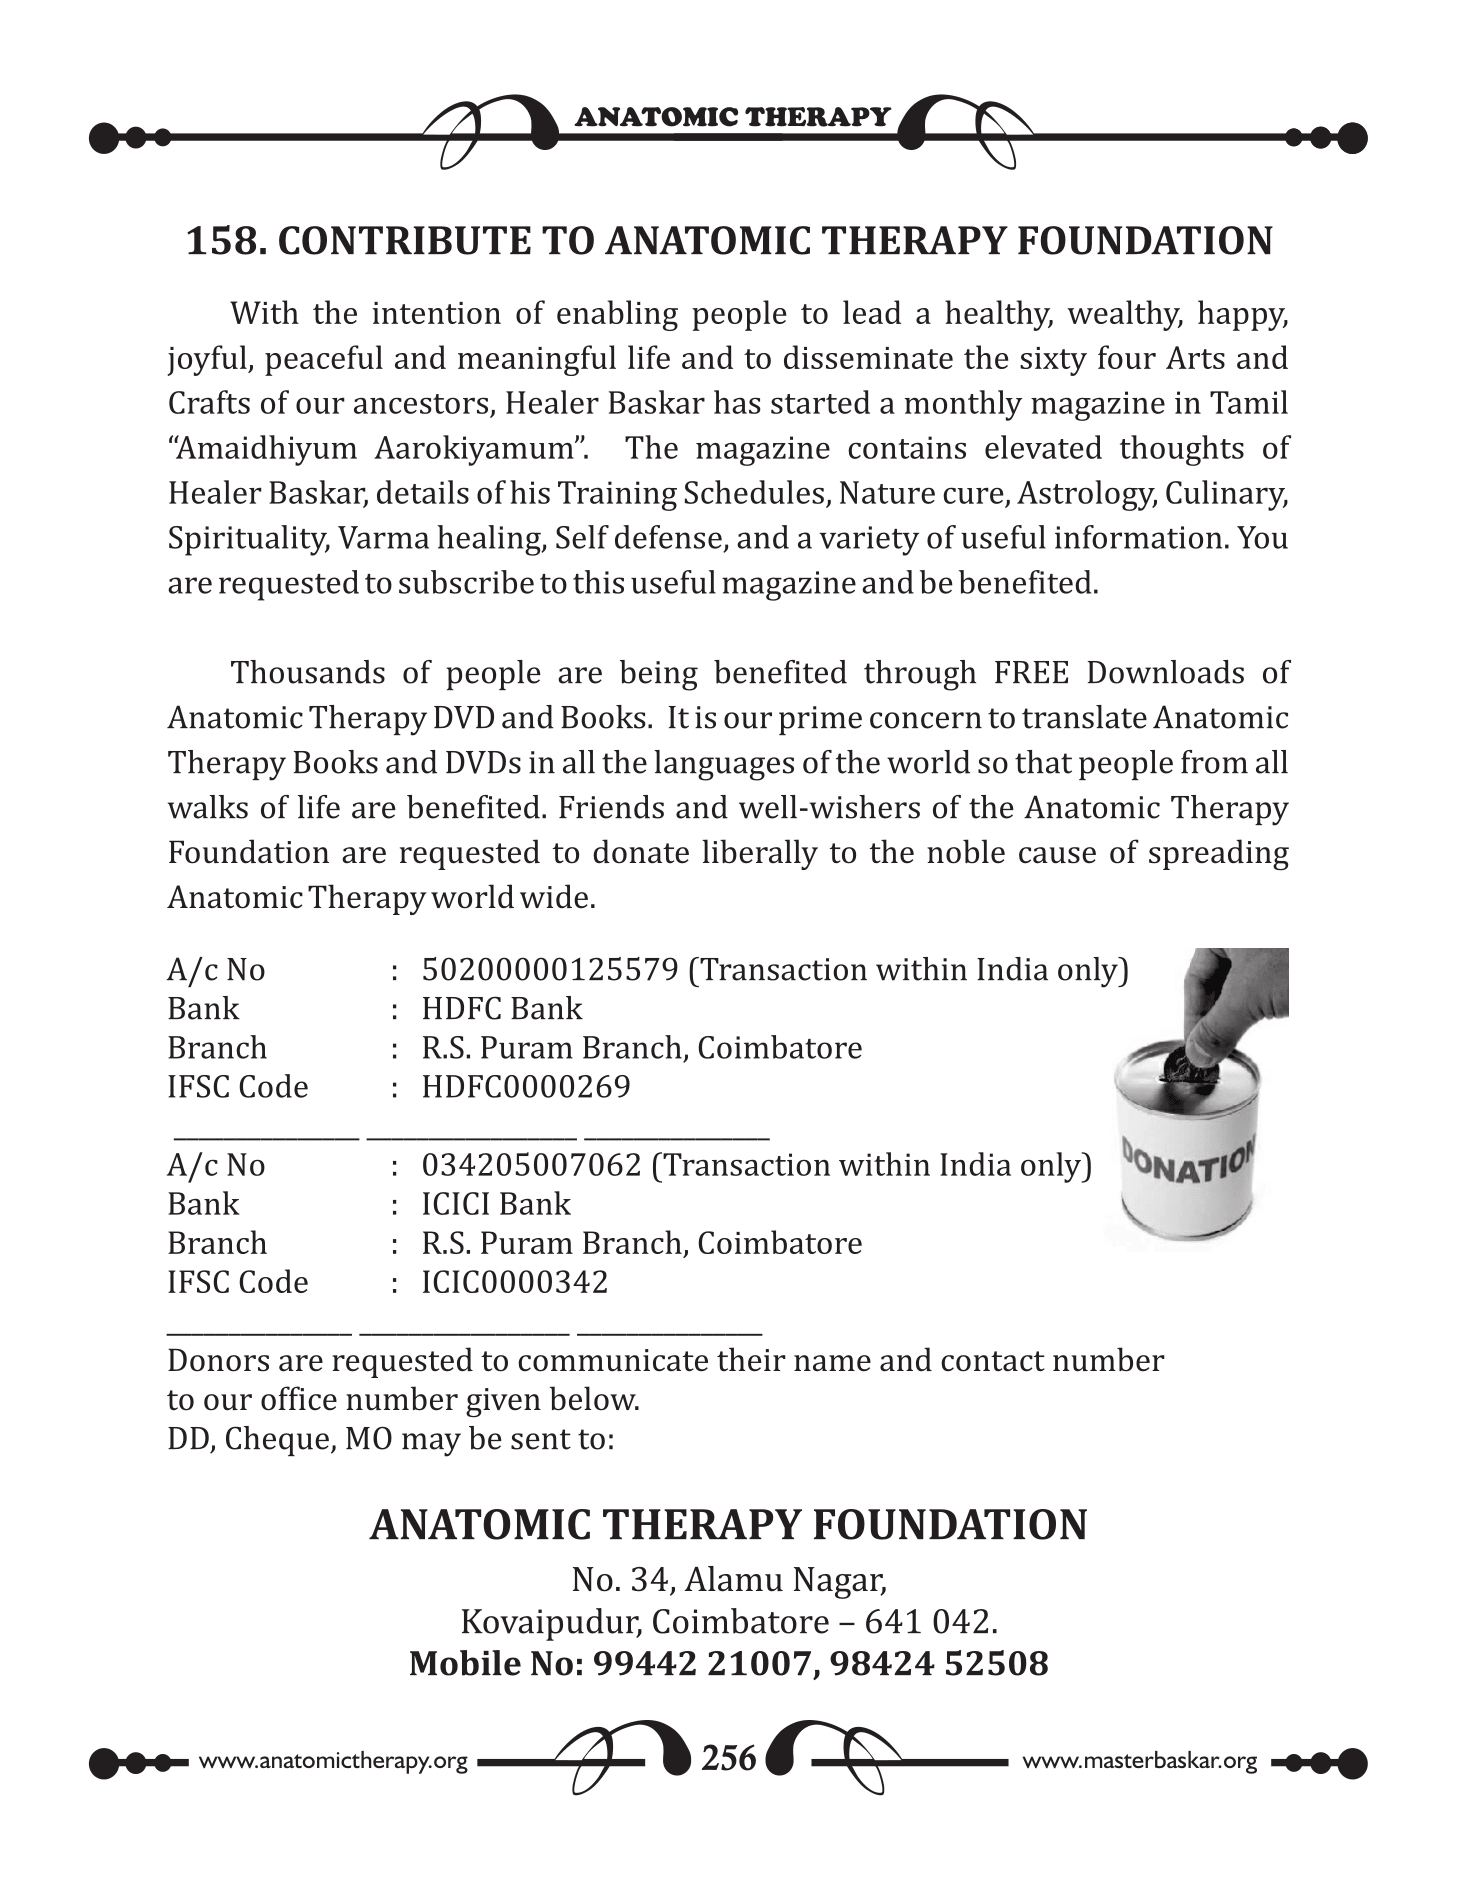 158. CONTRIBUTE TO ANATOMIC THERAPY FOUNDATION - fresh2refresh.com